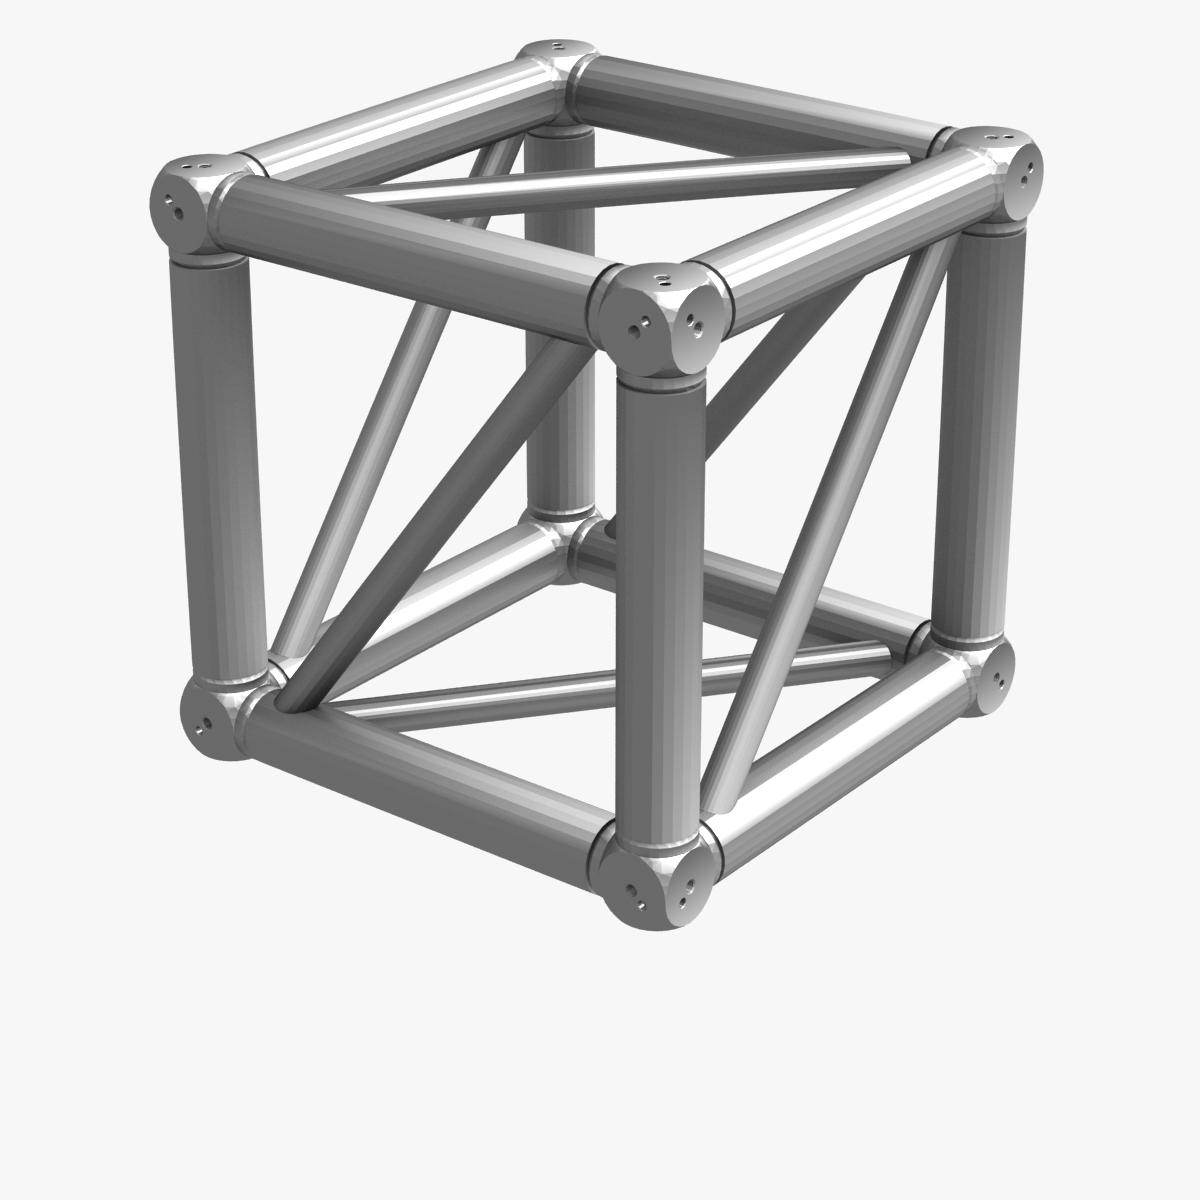 square light trusses (collection 50 modular) 3d model 3ds max dxf fbx c4d dae texture obj 216203